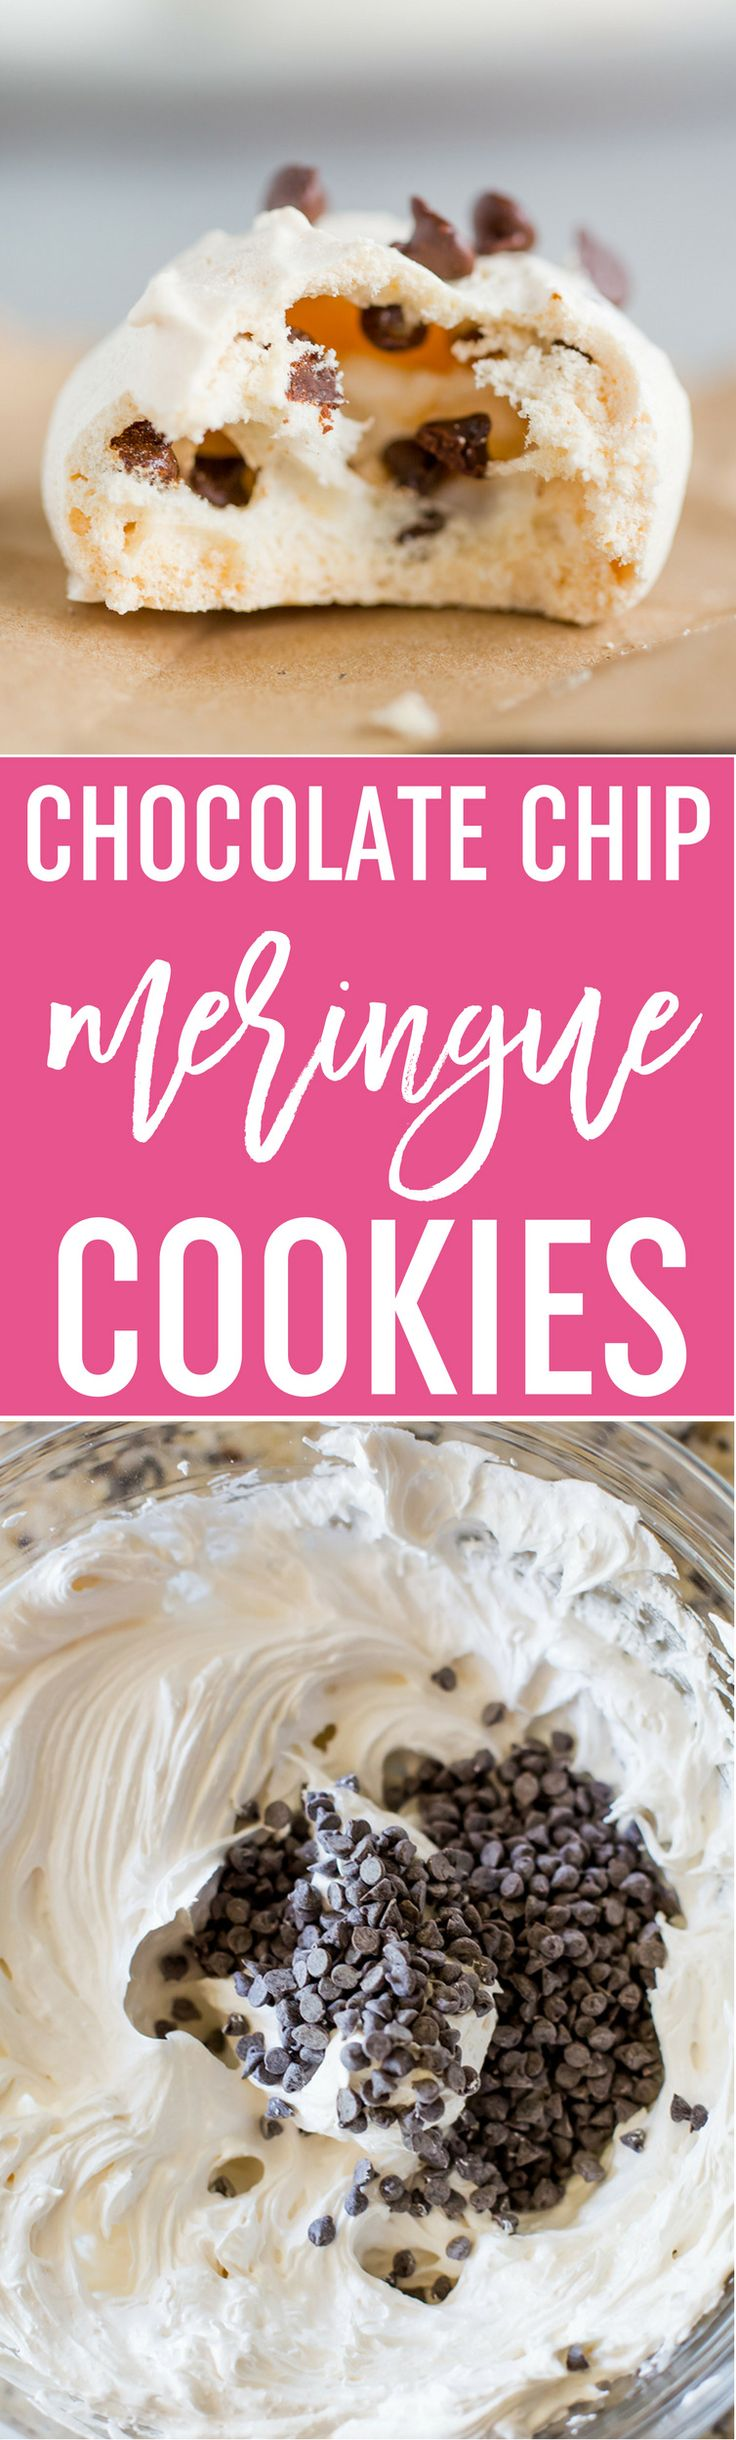 Chocolate Chip Meringue Cookies - These easy meringue cookies are loaded with mini chocolate chips and are perfect for any occasion, especially for holiday cookie exchanges and cookie trays! via @browneyedbaker